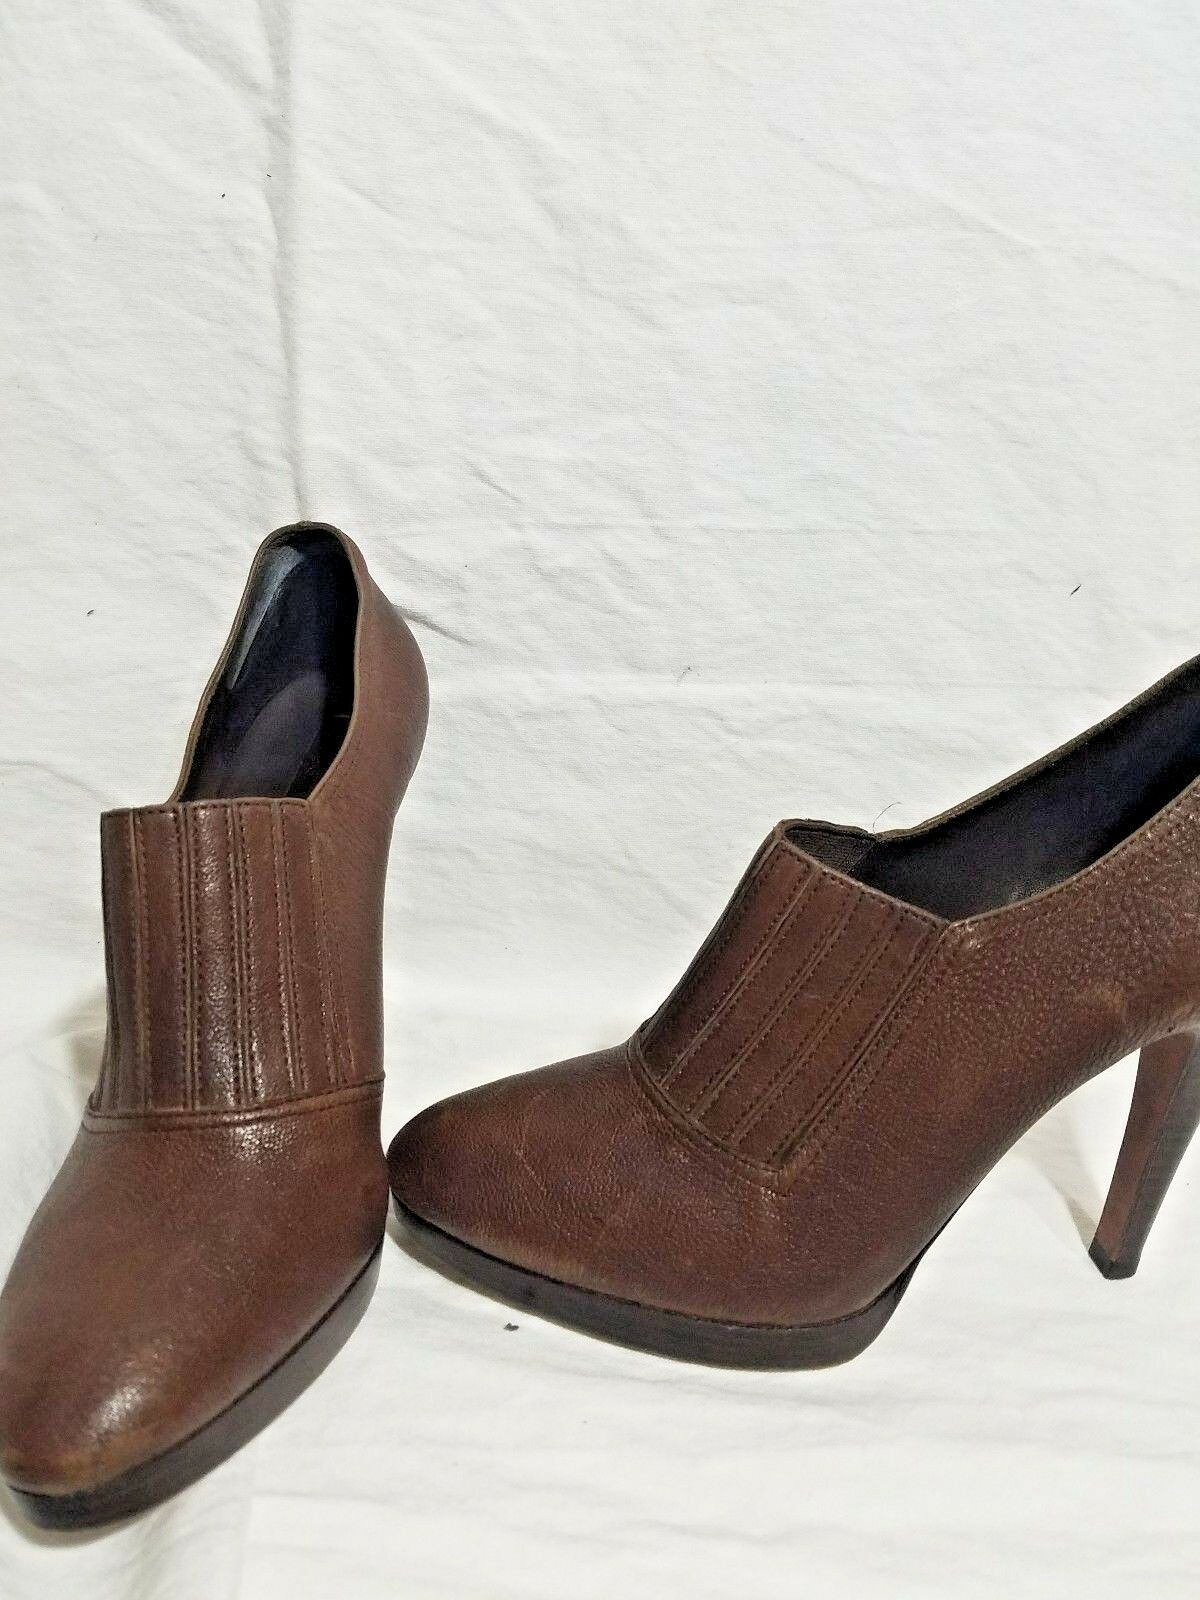 BCBG Catilda Brown Genuine Leather Leather Leather Booties Sz 9.5 456bd9